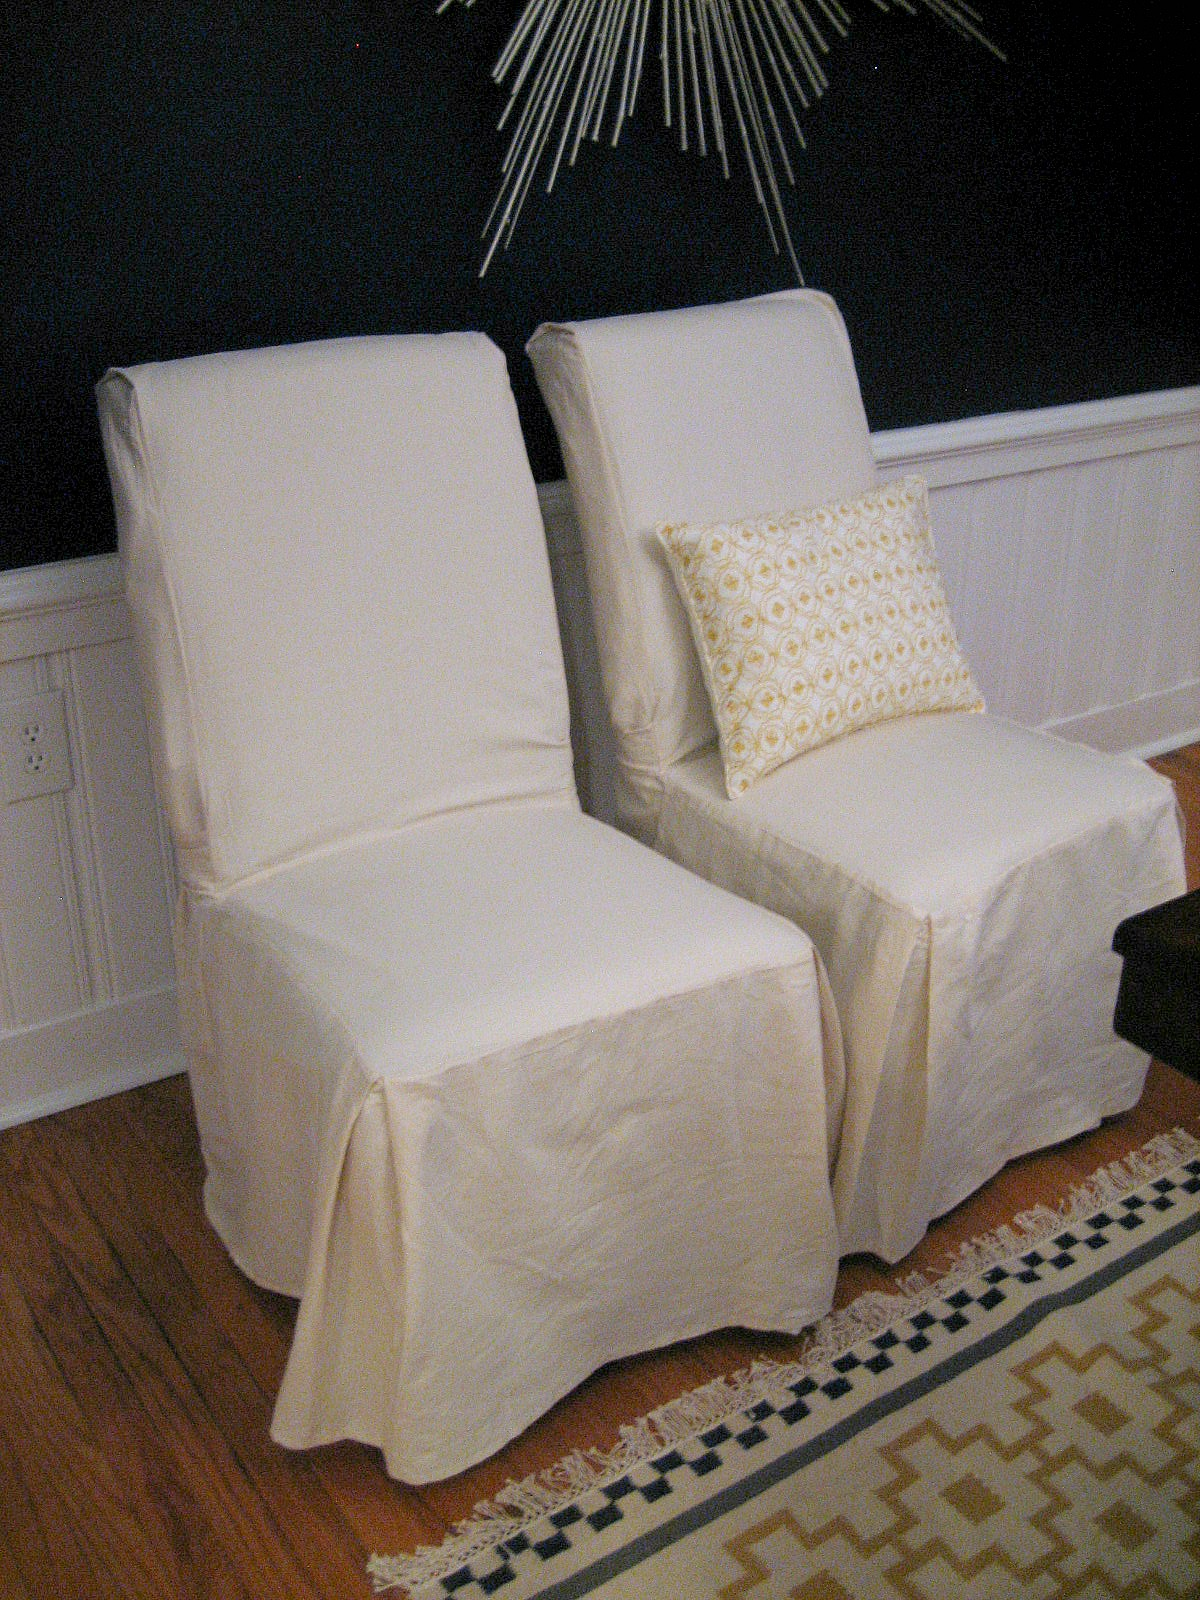 Double White Parson Chair Slipcovers With Pillow